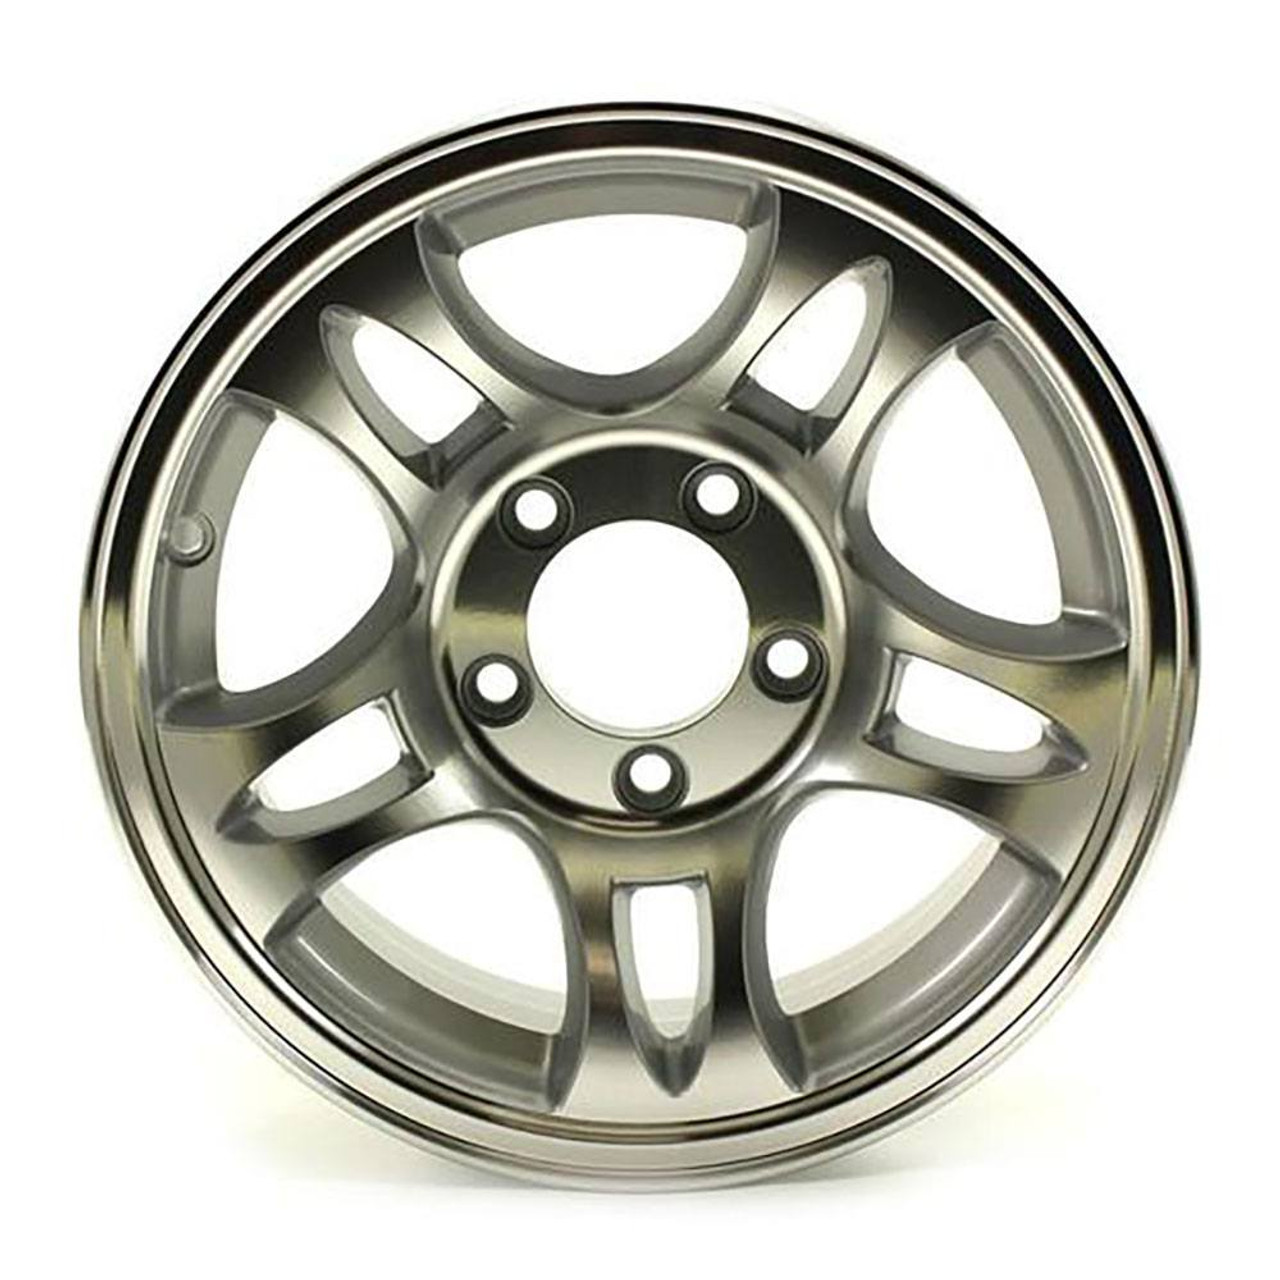 "14X5.5 5-Lug on 4.5"" Aluminum T03 Trailer Wheel - T03-45545T"